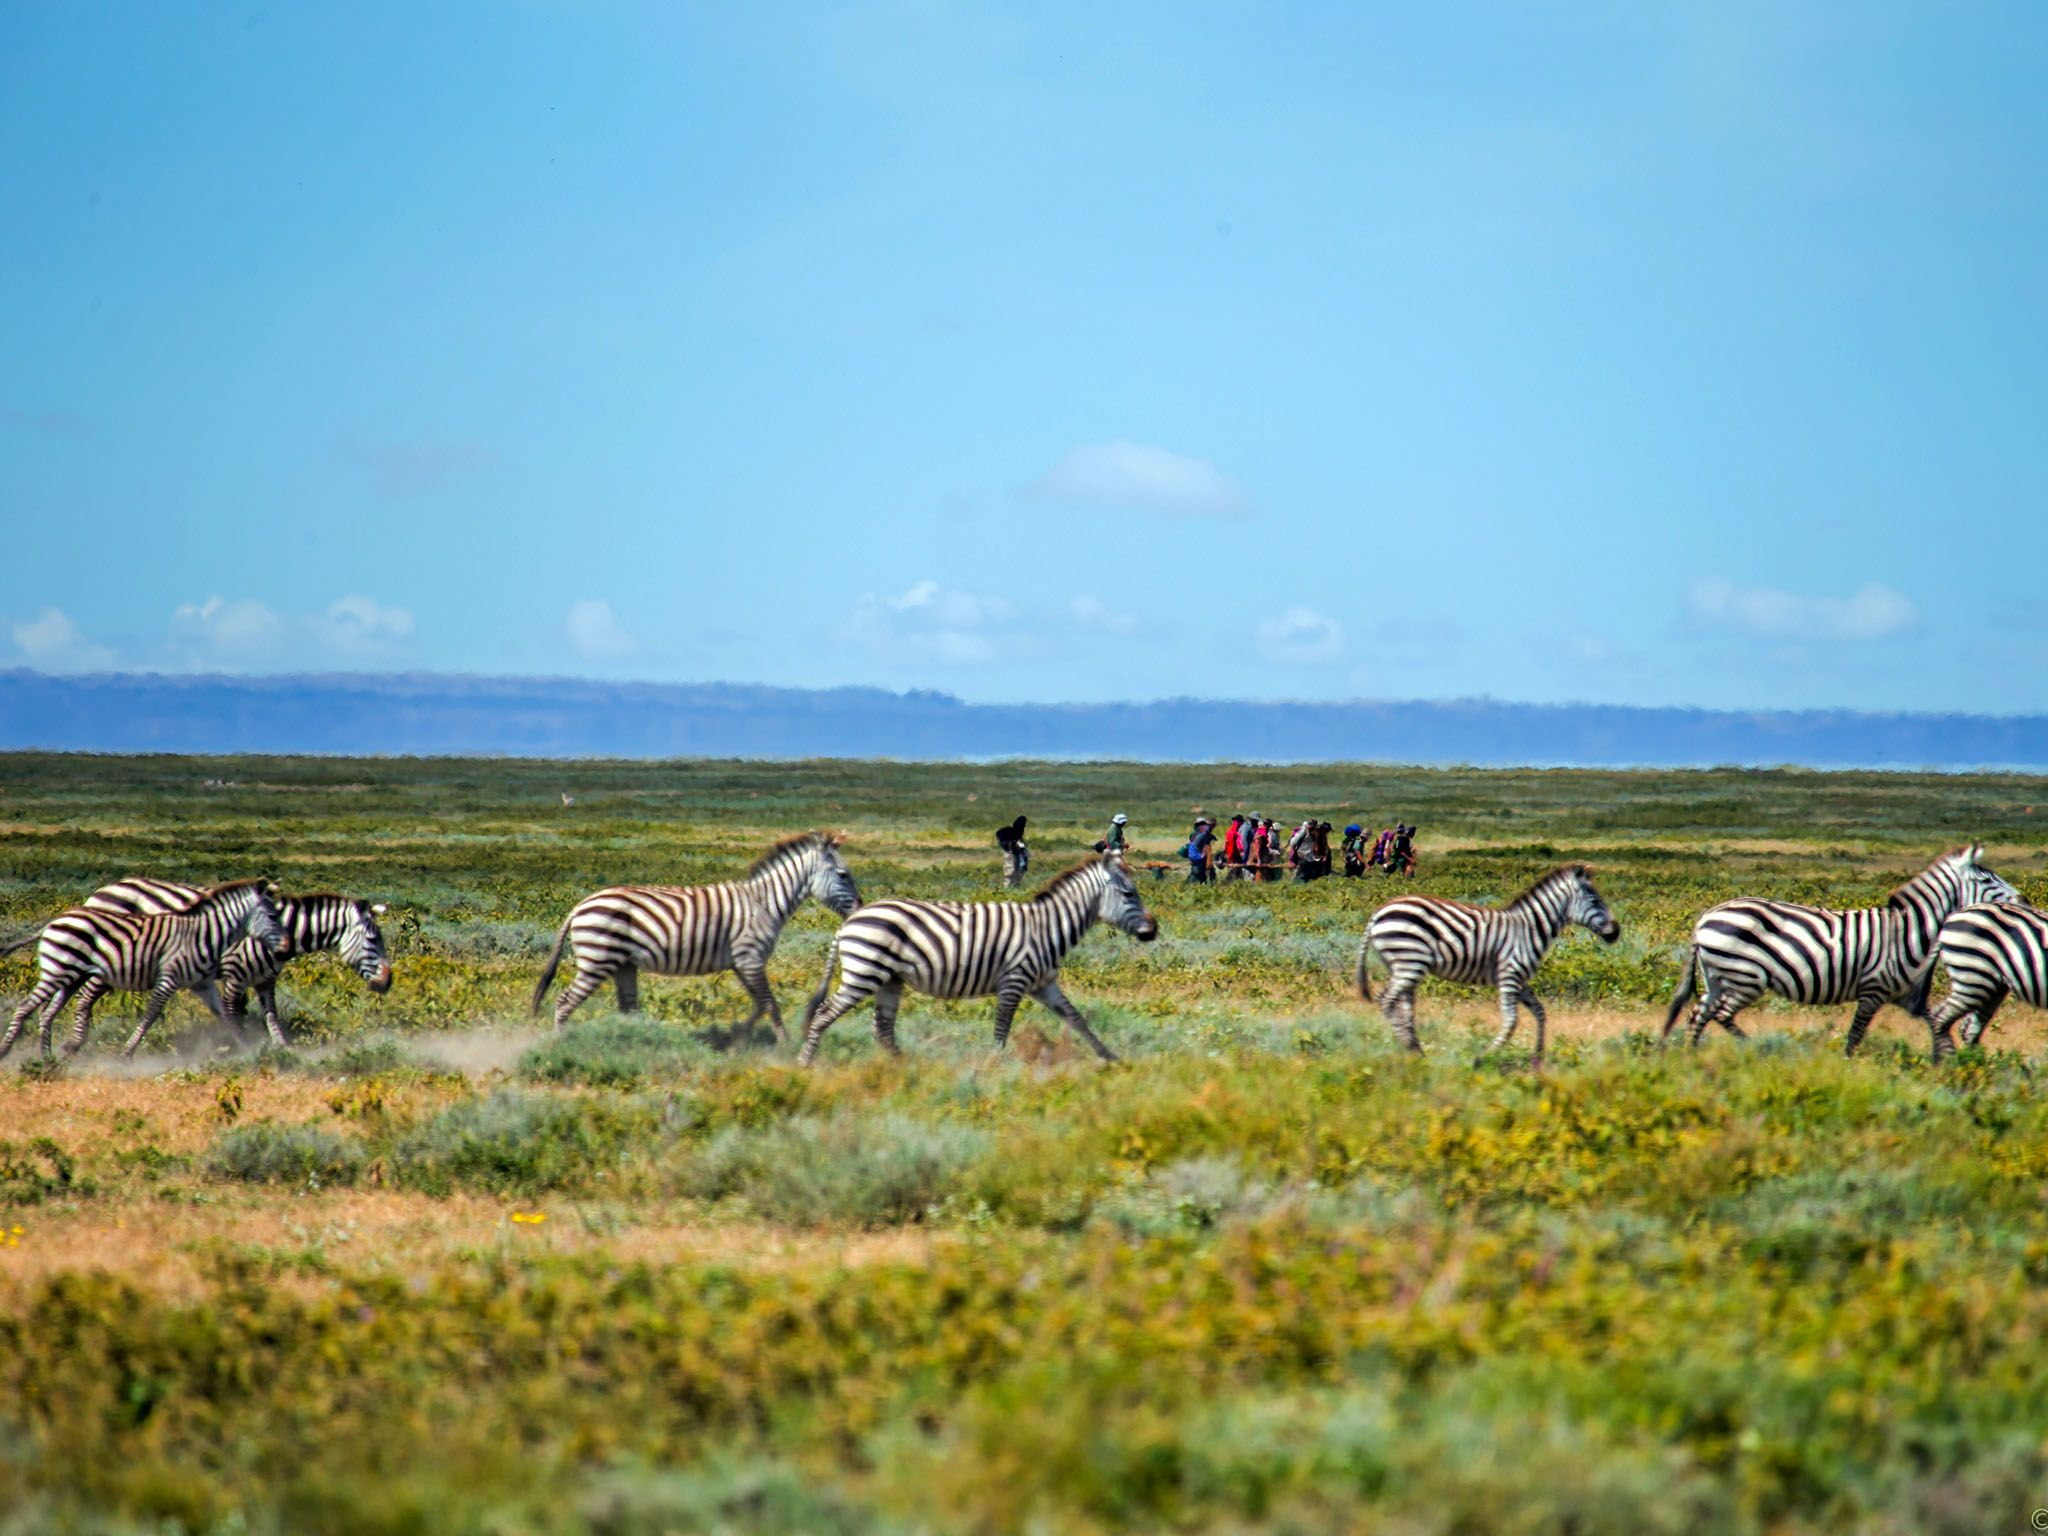 Tanzania, Africa: Extreme long shot of human herd migrating with a herd of zebras in middle... [Photo of the day - می 2016]